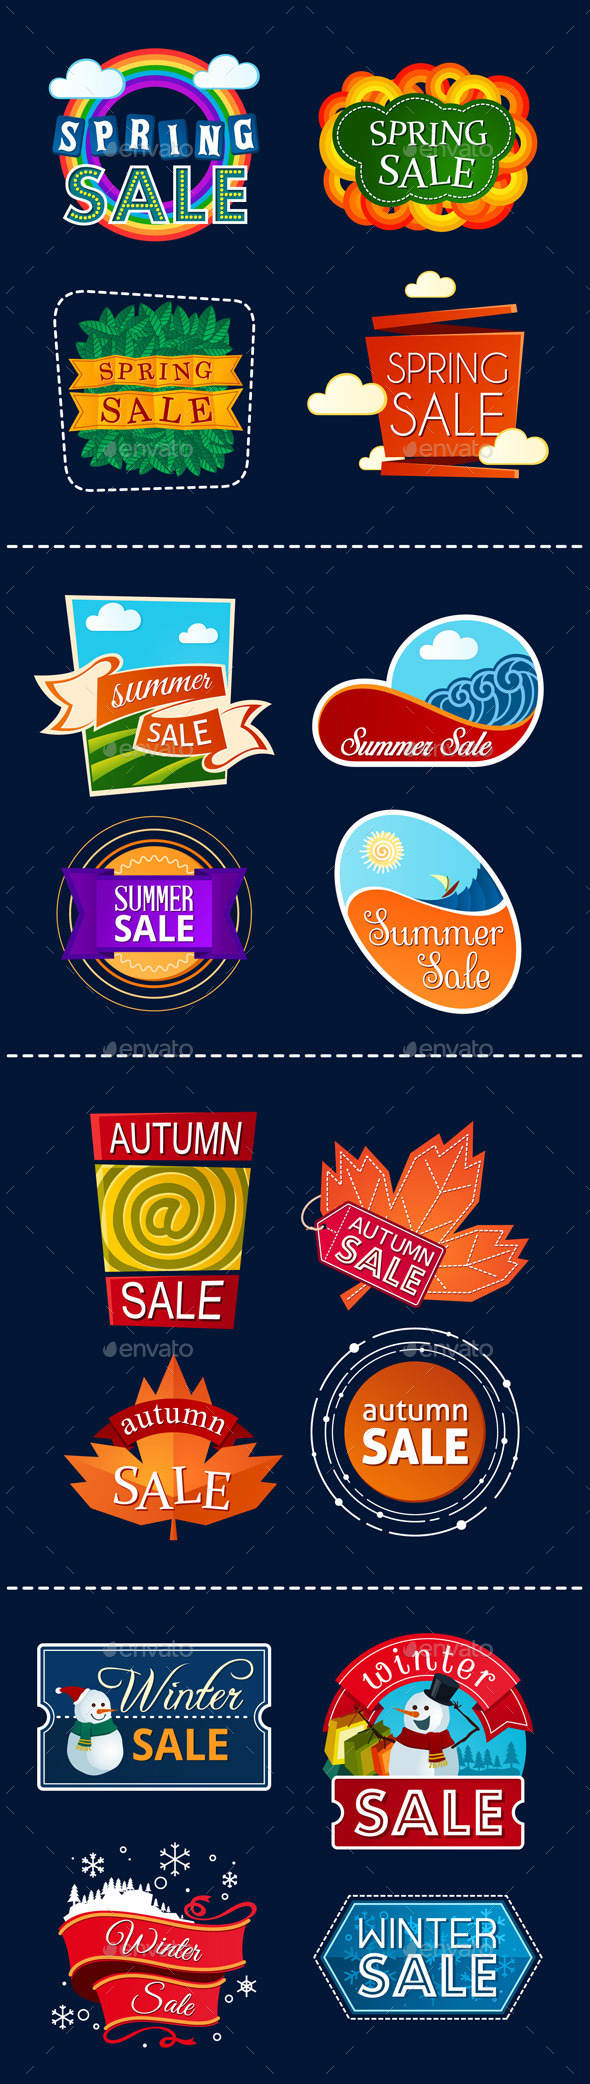 Various Seasonal Sale Event Title - Seasons/Holidays Conceptual